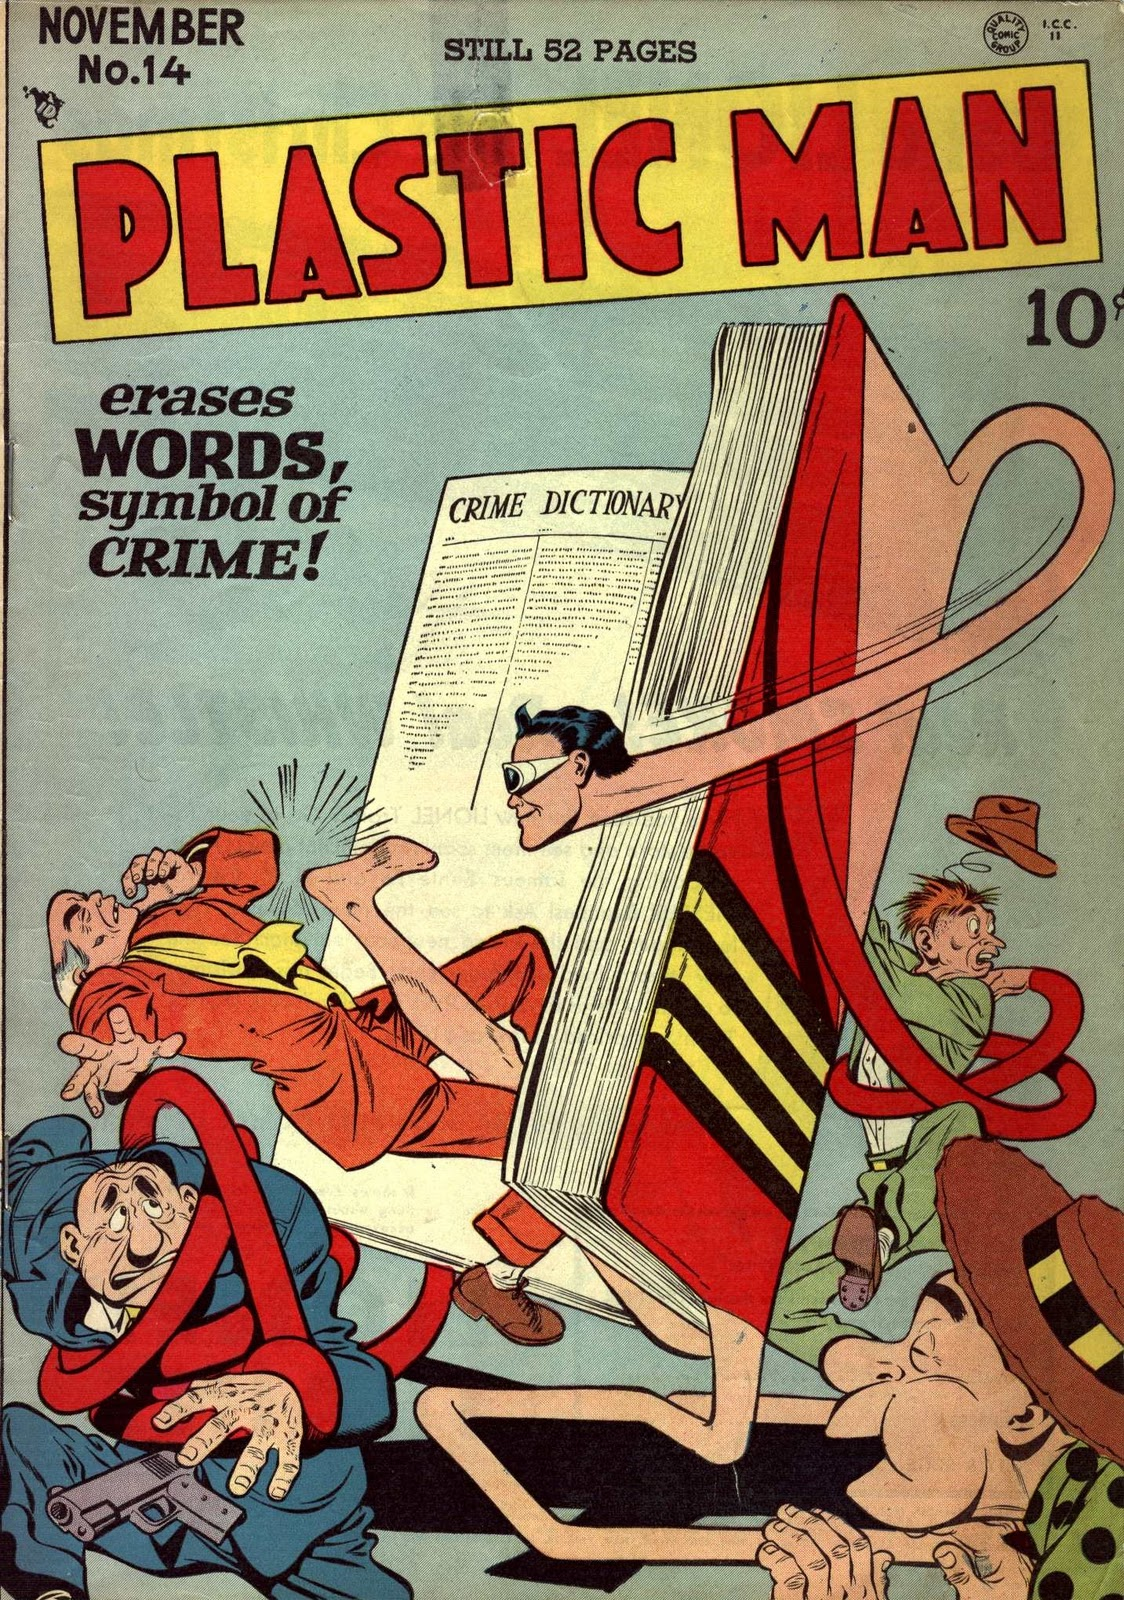 Top 5 Funniest Superheroes - Plastic Man